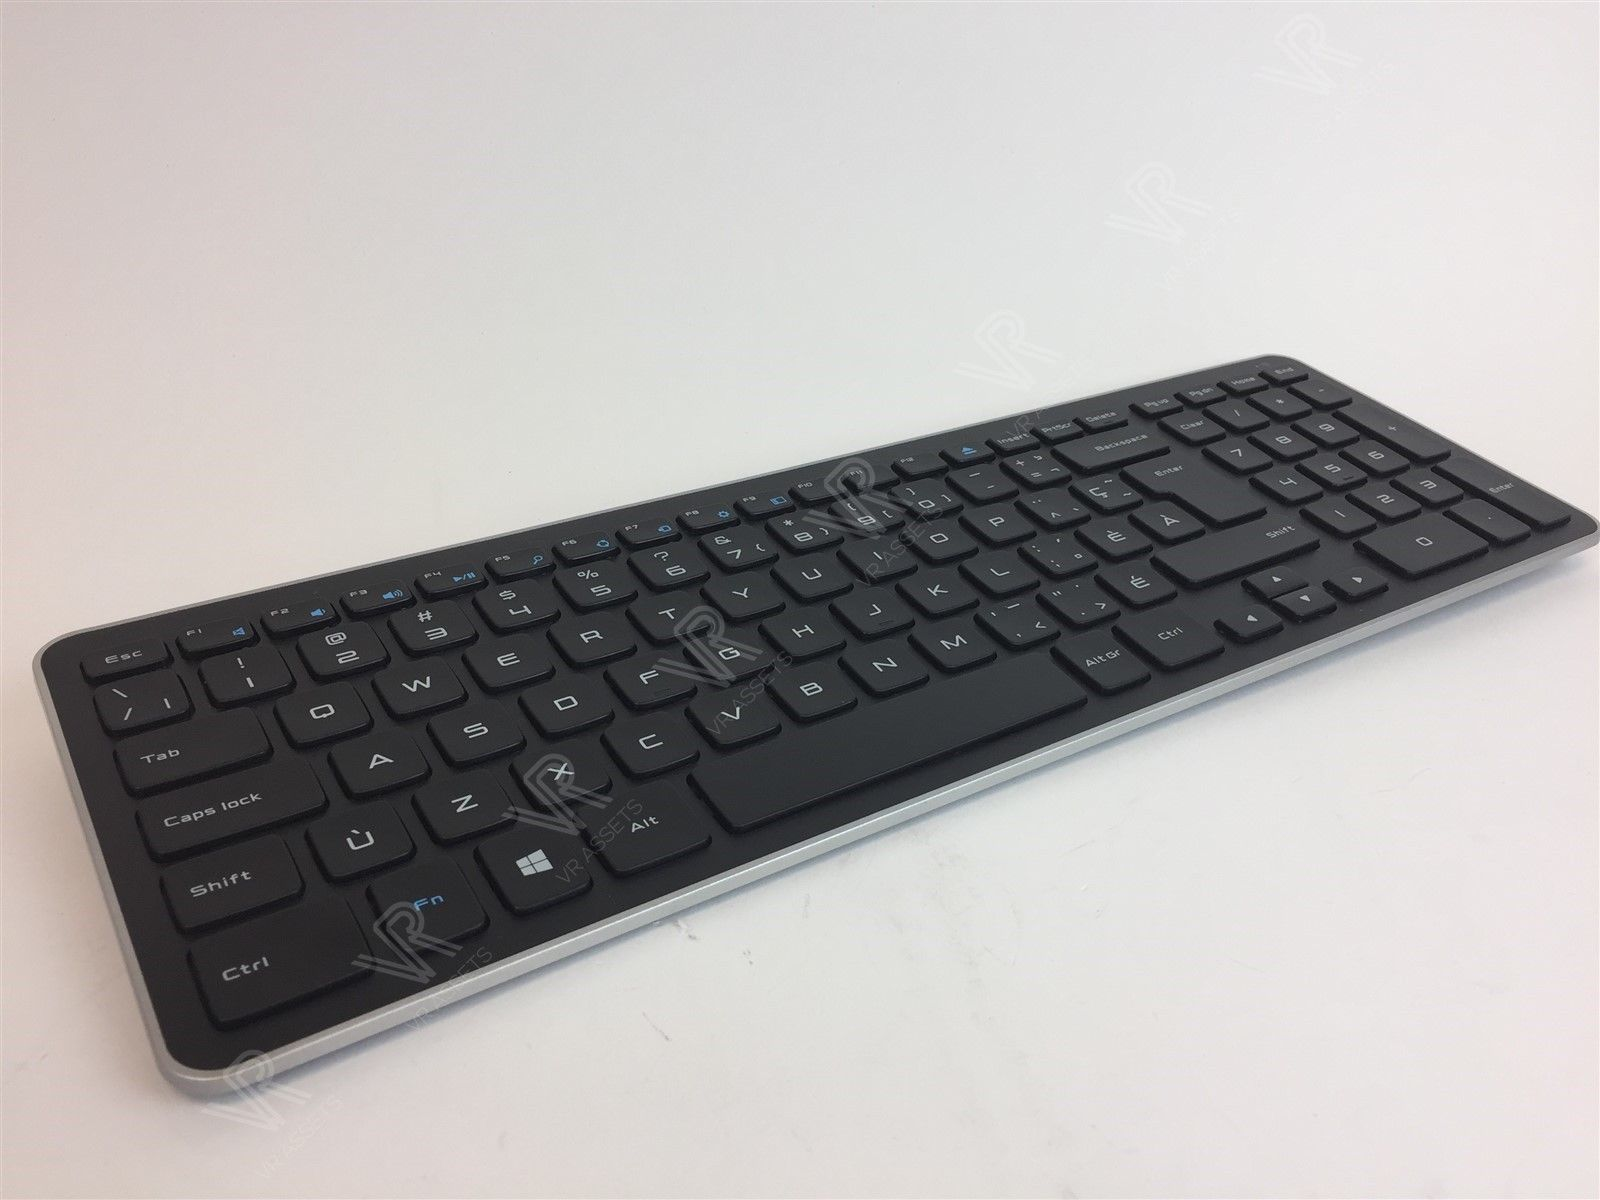 vr assets dell km714 wireless keyboard and mouse combo set french canadian 83drp new. Black Bedroom Furniture Sets. Home Design Ideas